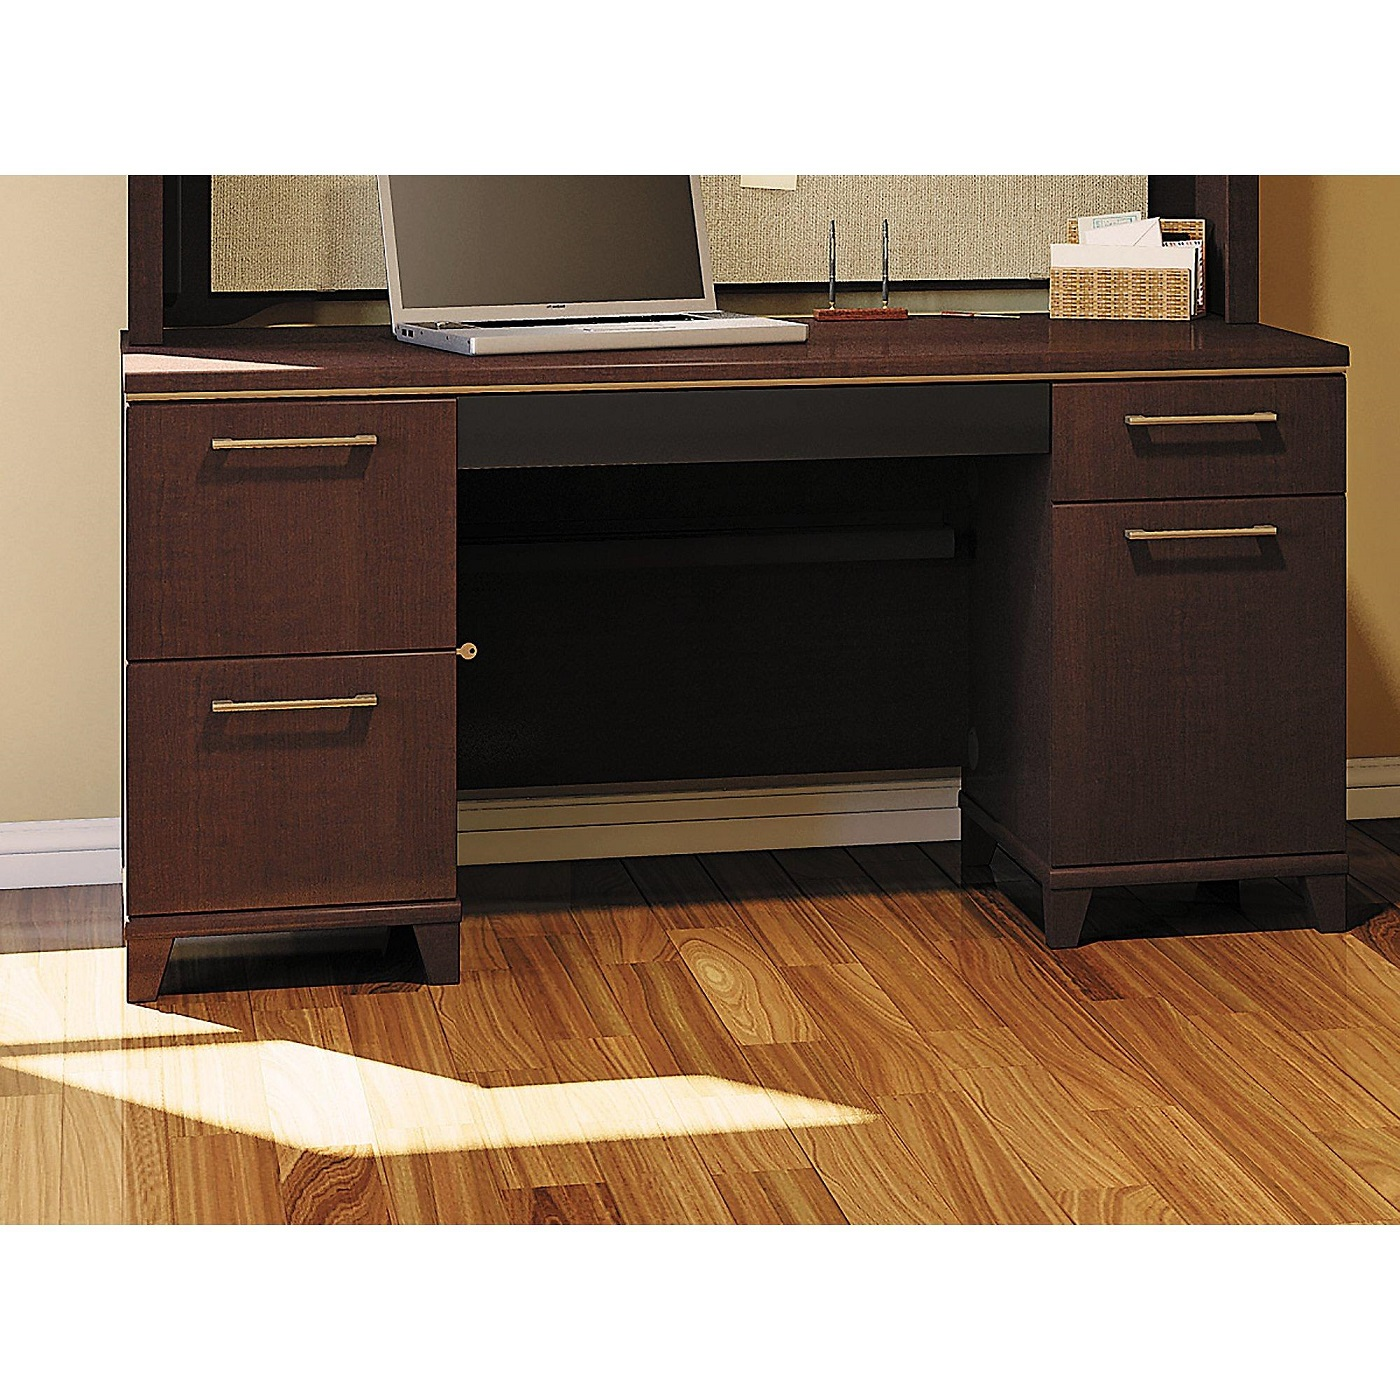 <b><font color=#c60>BUSH BUSINESS FURNITURE ENTERPRISE MOCHA CHERRY 60W OFFICE DESK WITH 2 PEDESTALS #EH-2960MC-03K:</b></font>